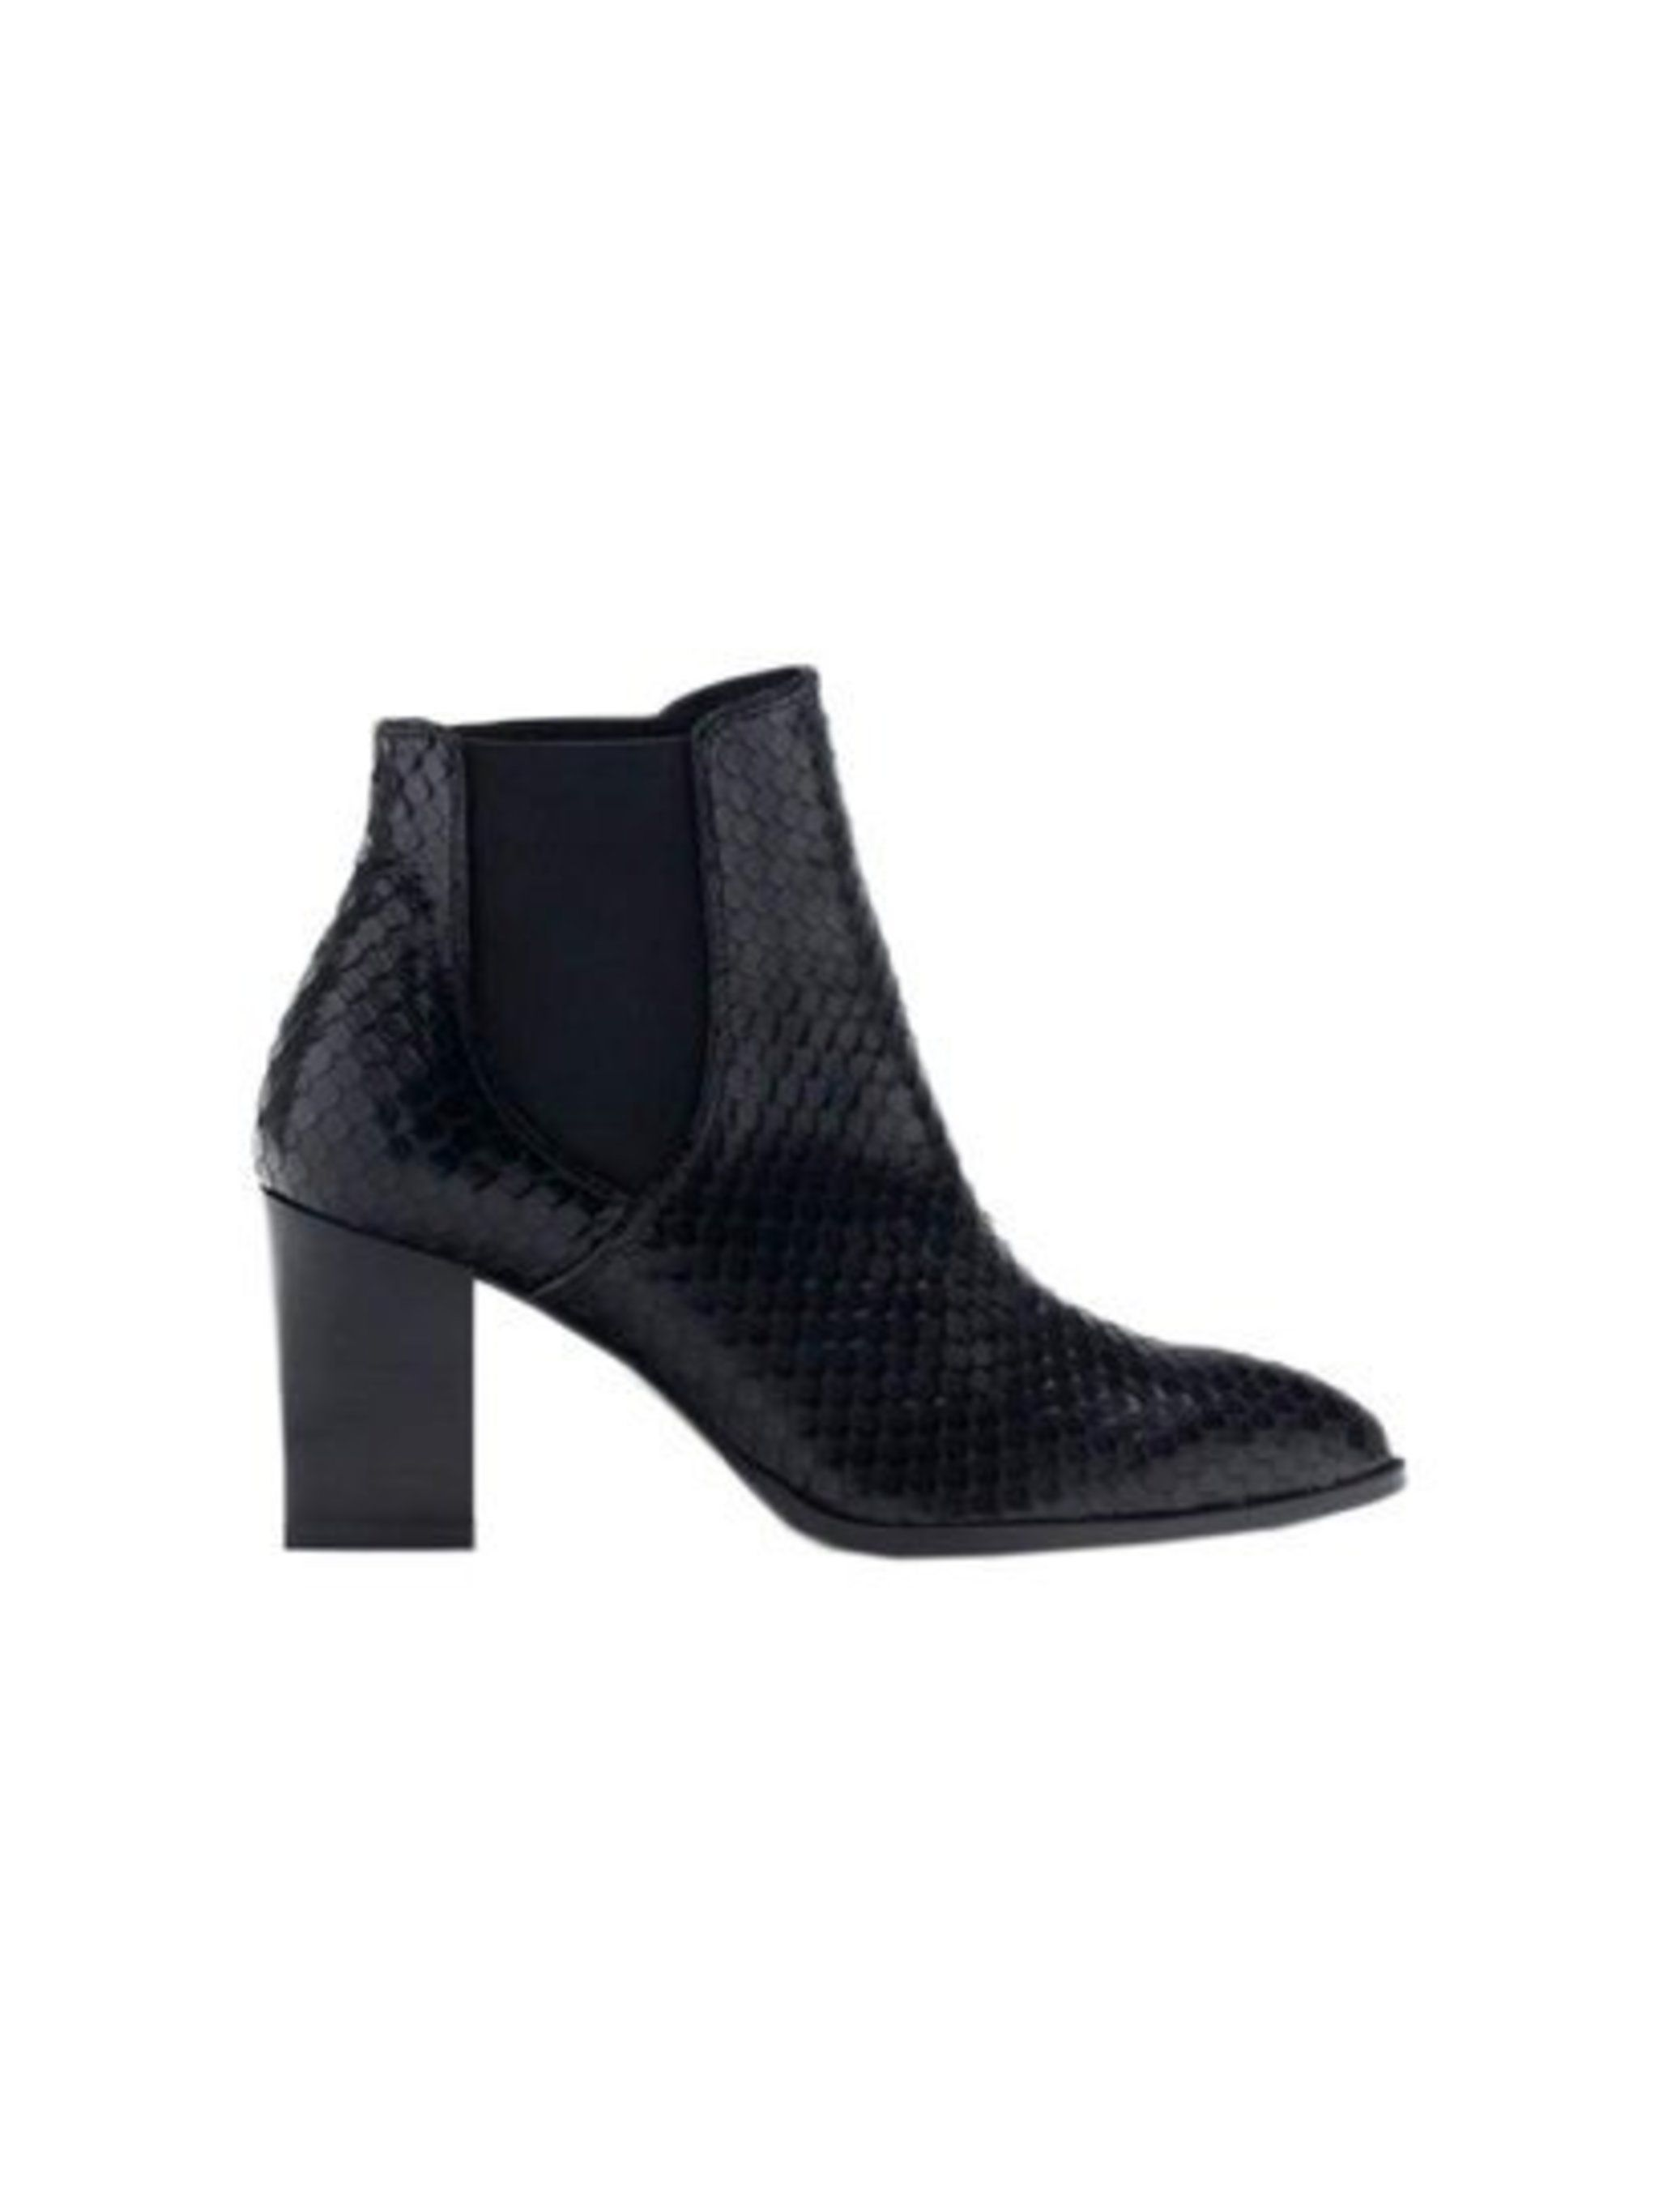 Great with next season's mid length skirt and bare legs come autumn.Uterqüe boots, £125